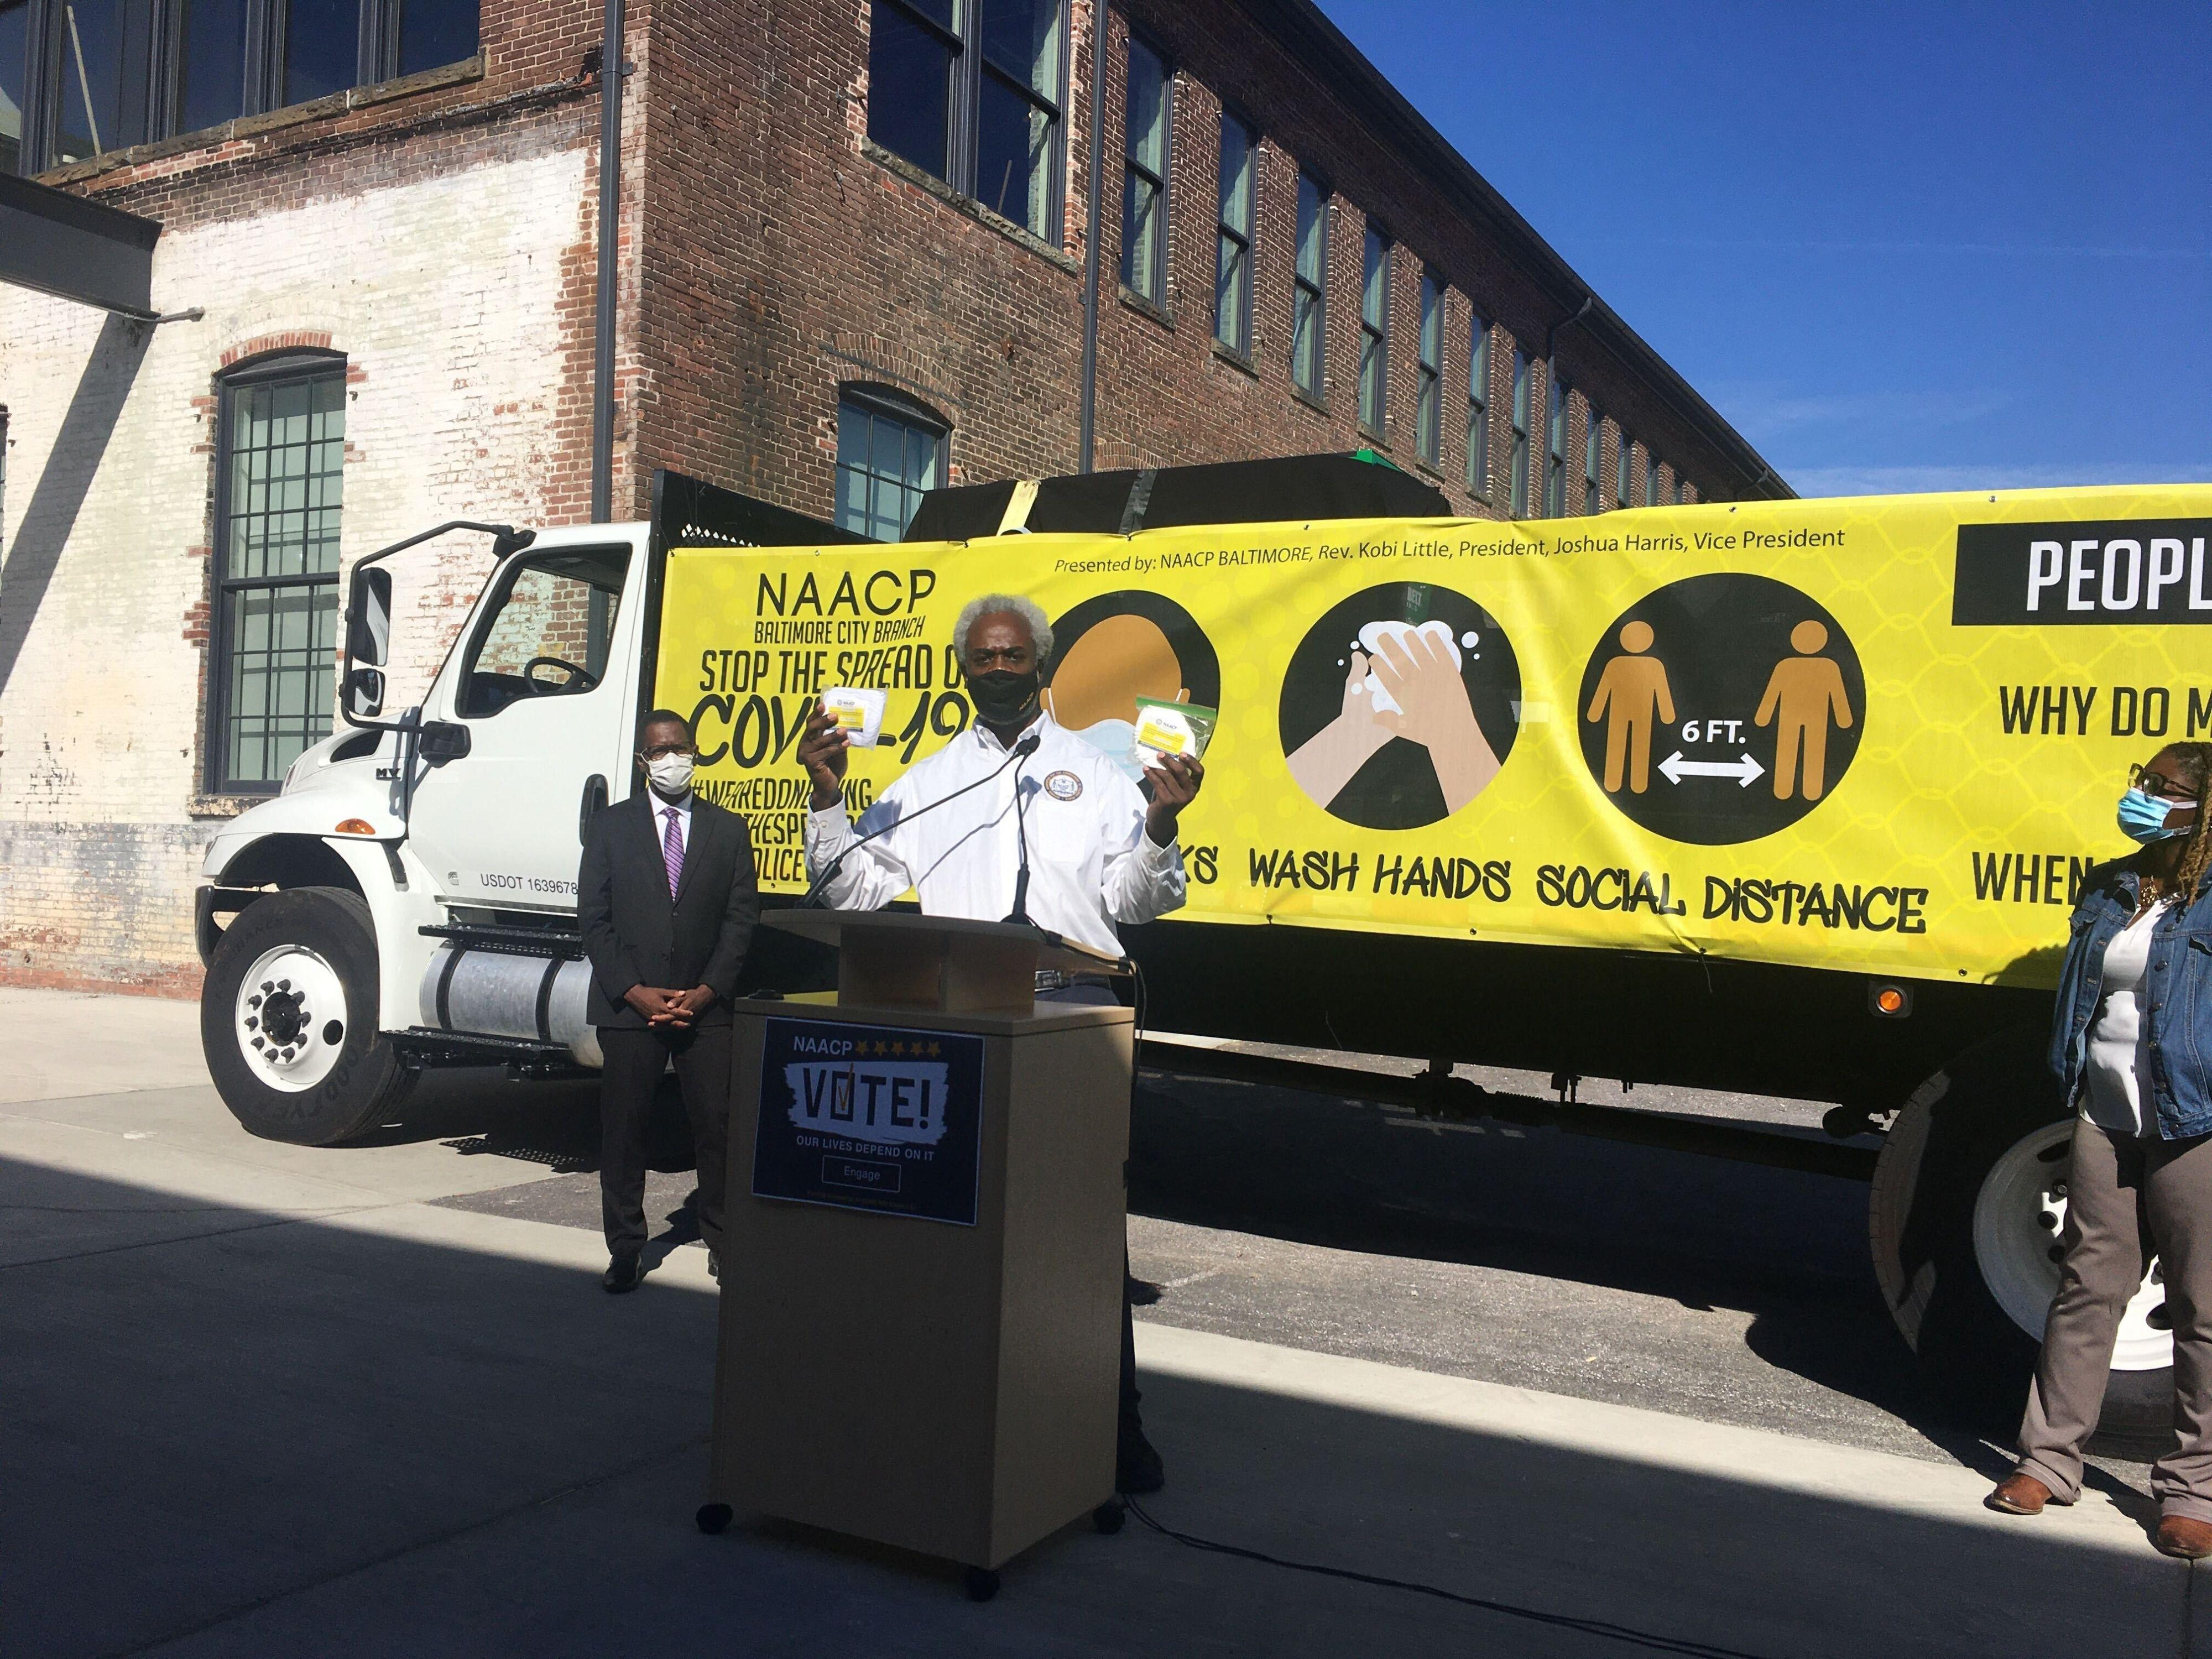 Baltimore NAACP to distribute 10,000 free masks to help at-risk communities fight COVID-19